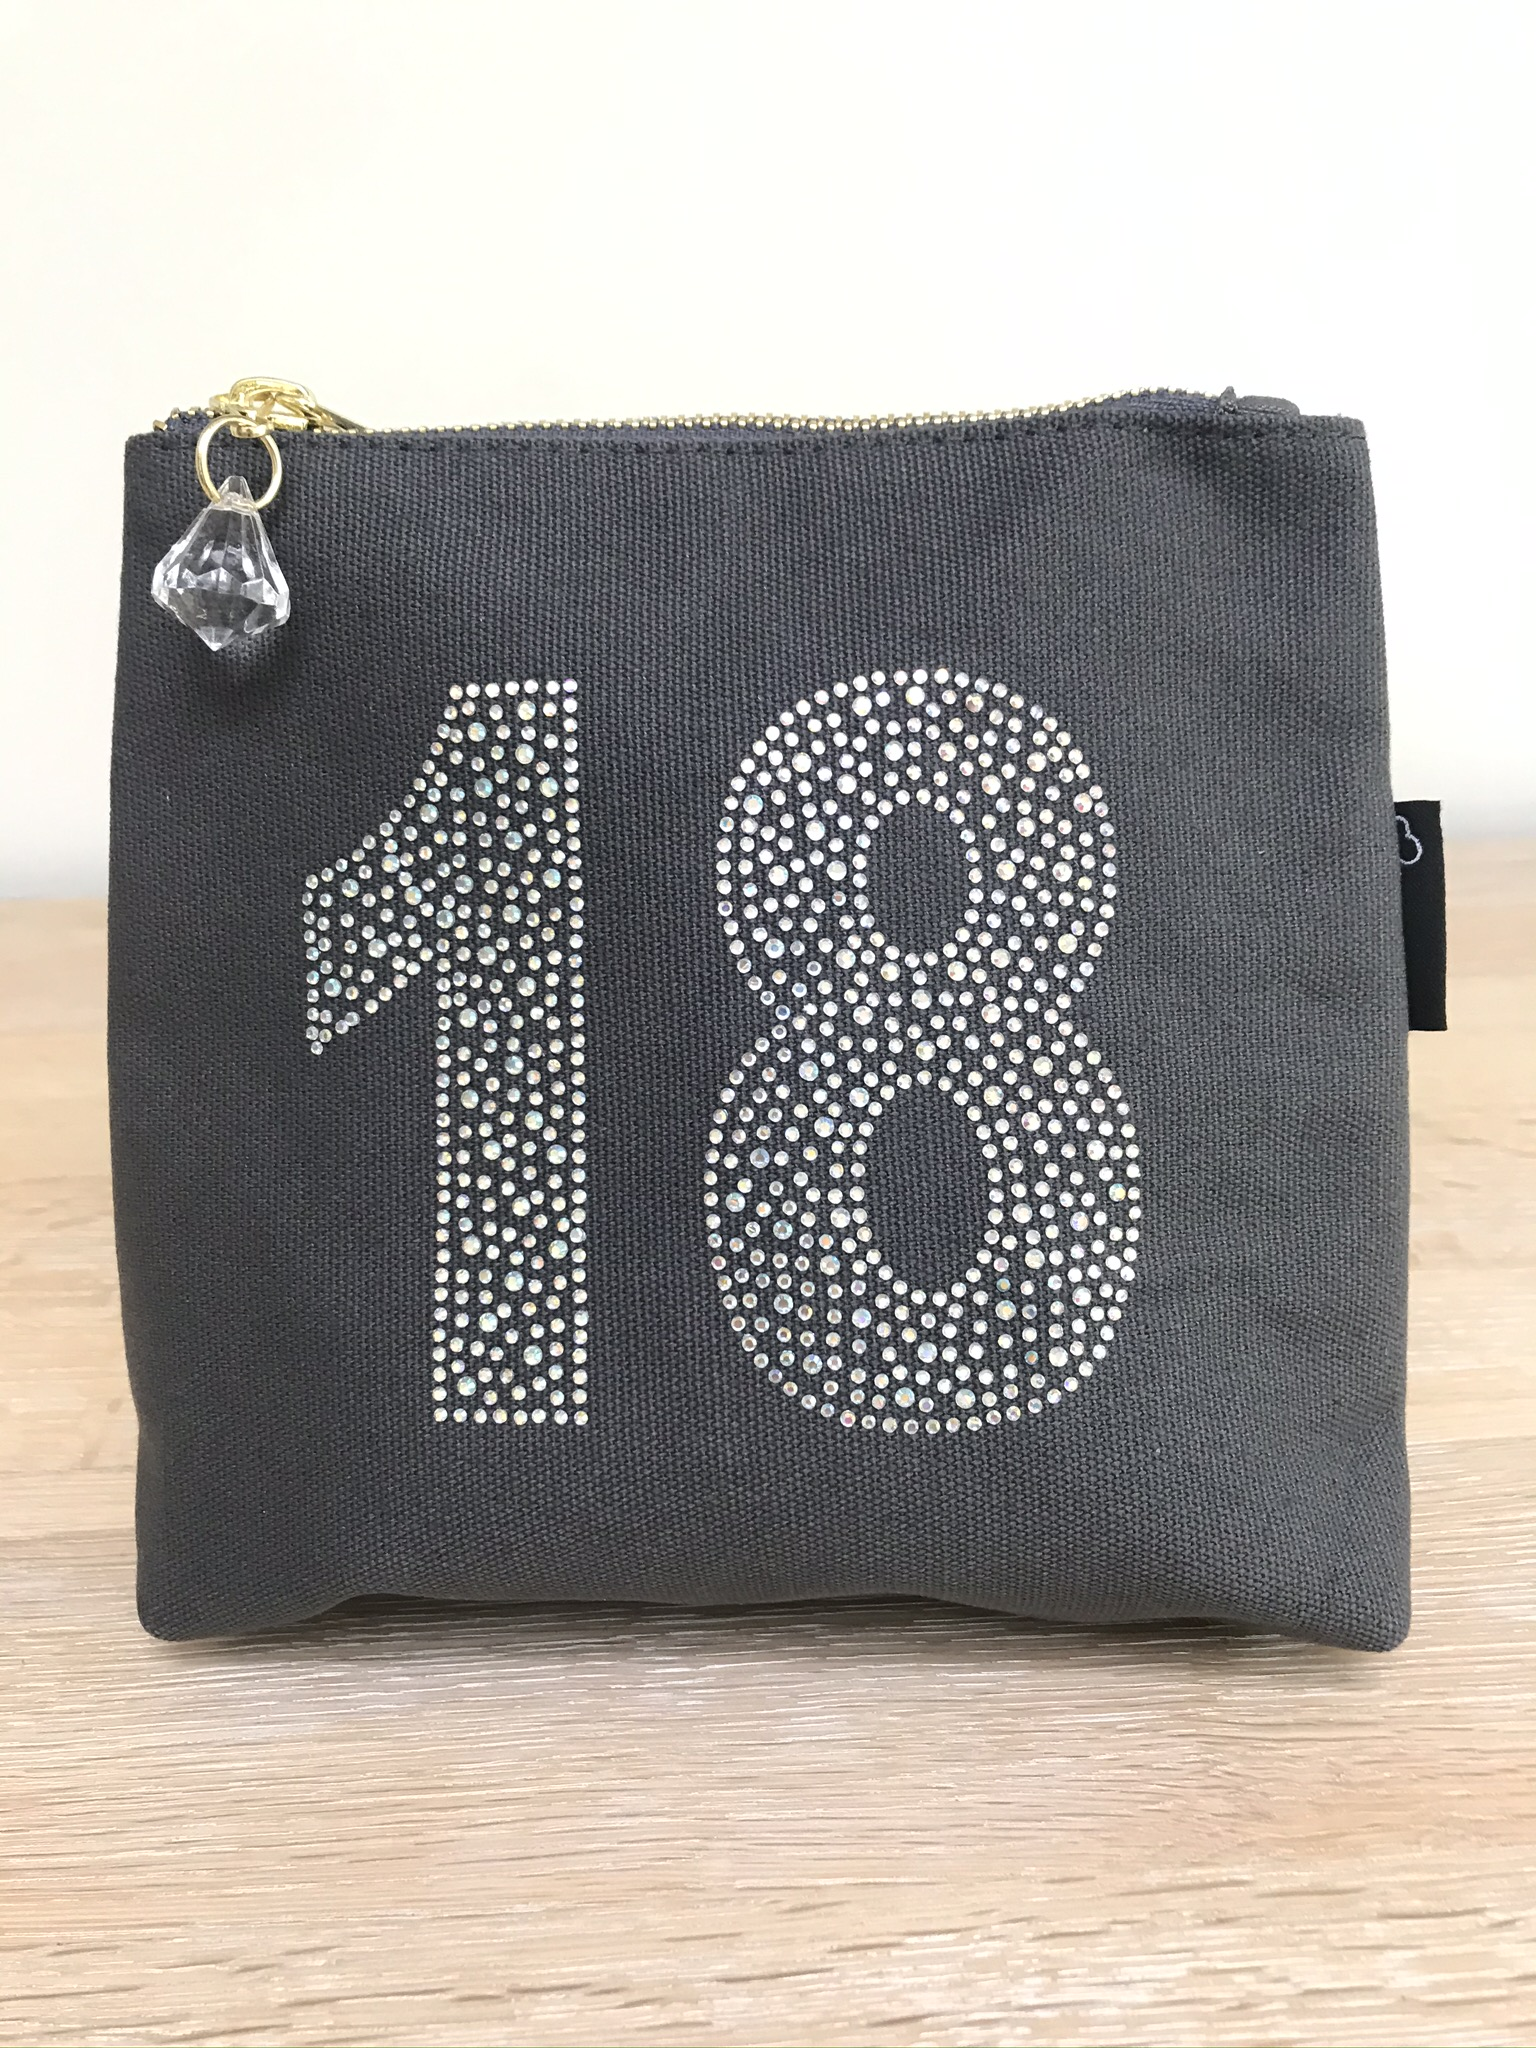 Make up bags Sparkly Ages - 7 Designs Available